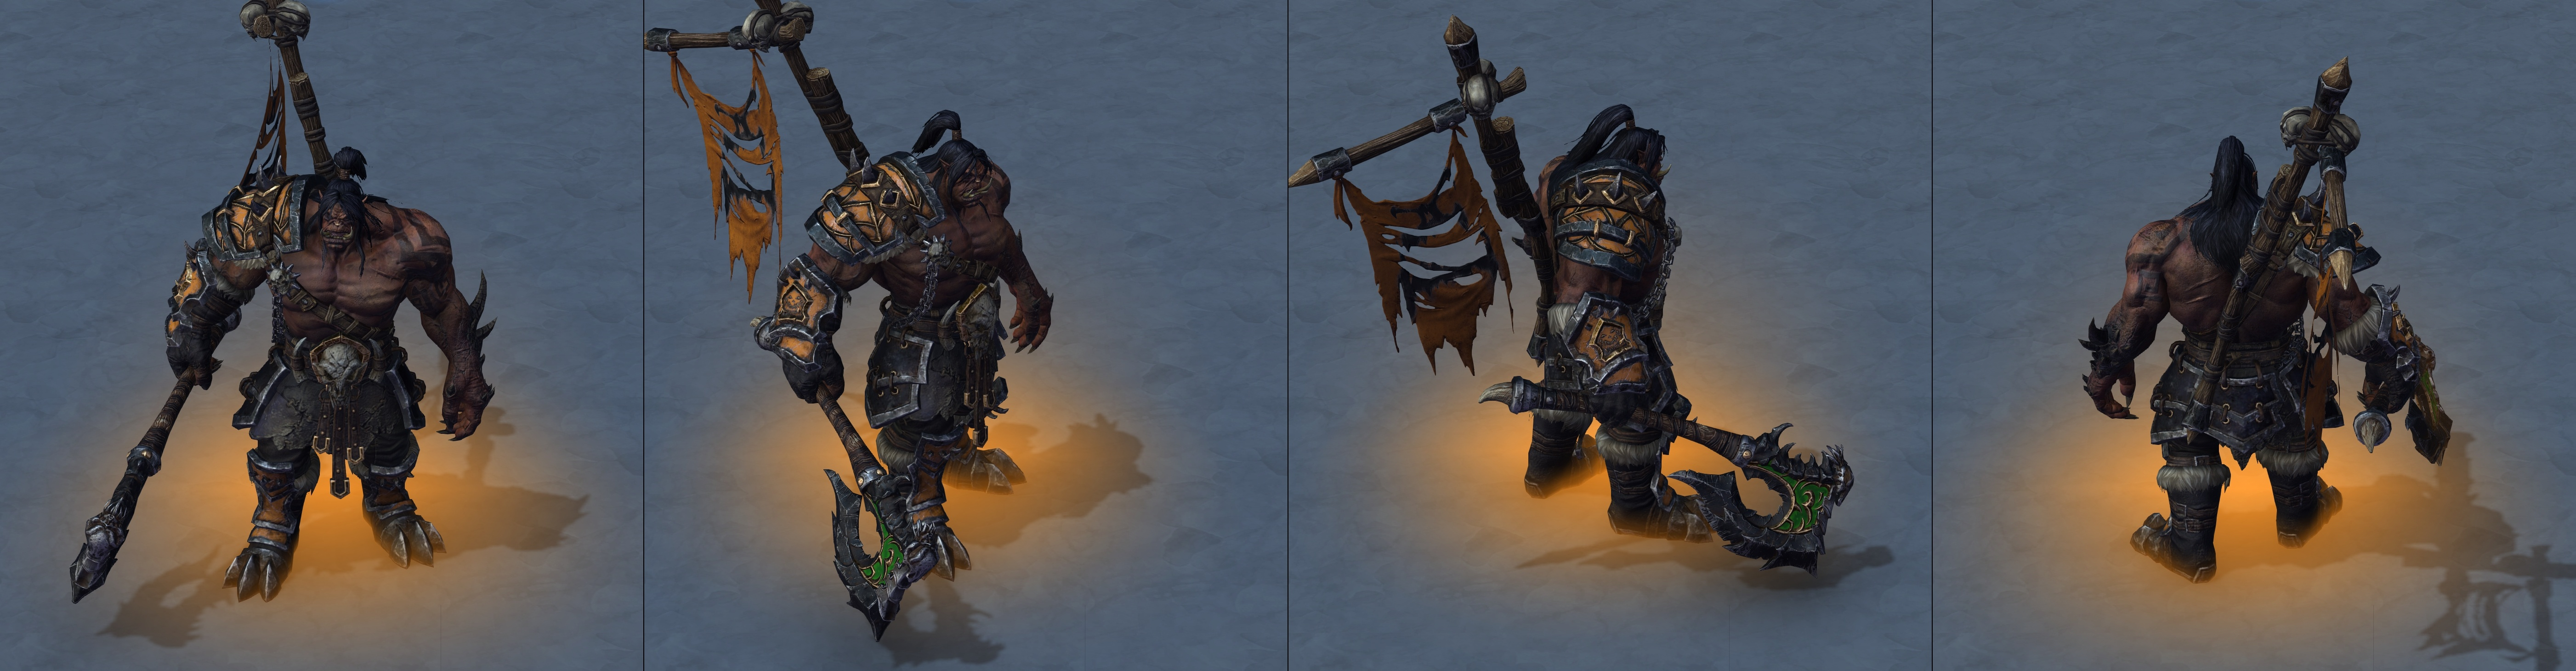 Warcraft Iii Reforged Horde Character Models Thrall Vol Jin Rexxar And More Wowhead News